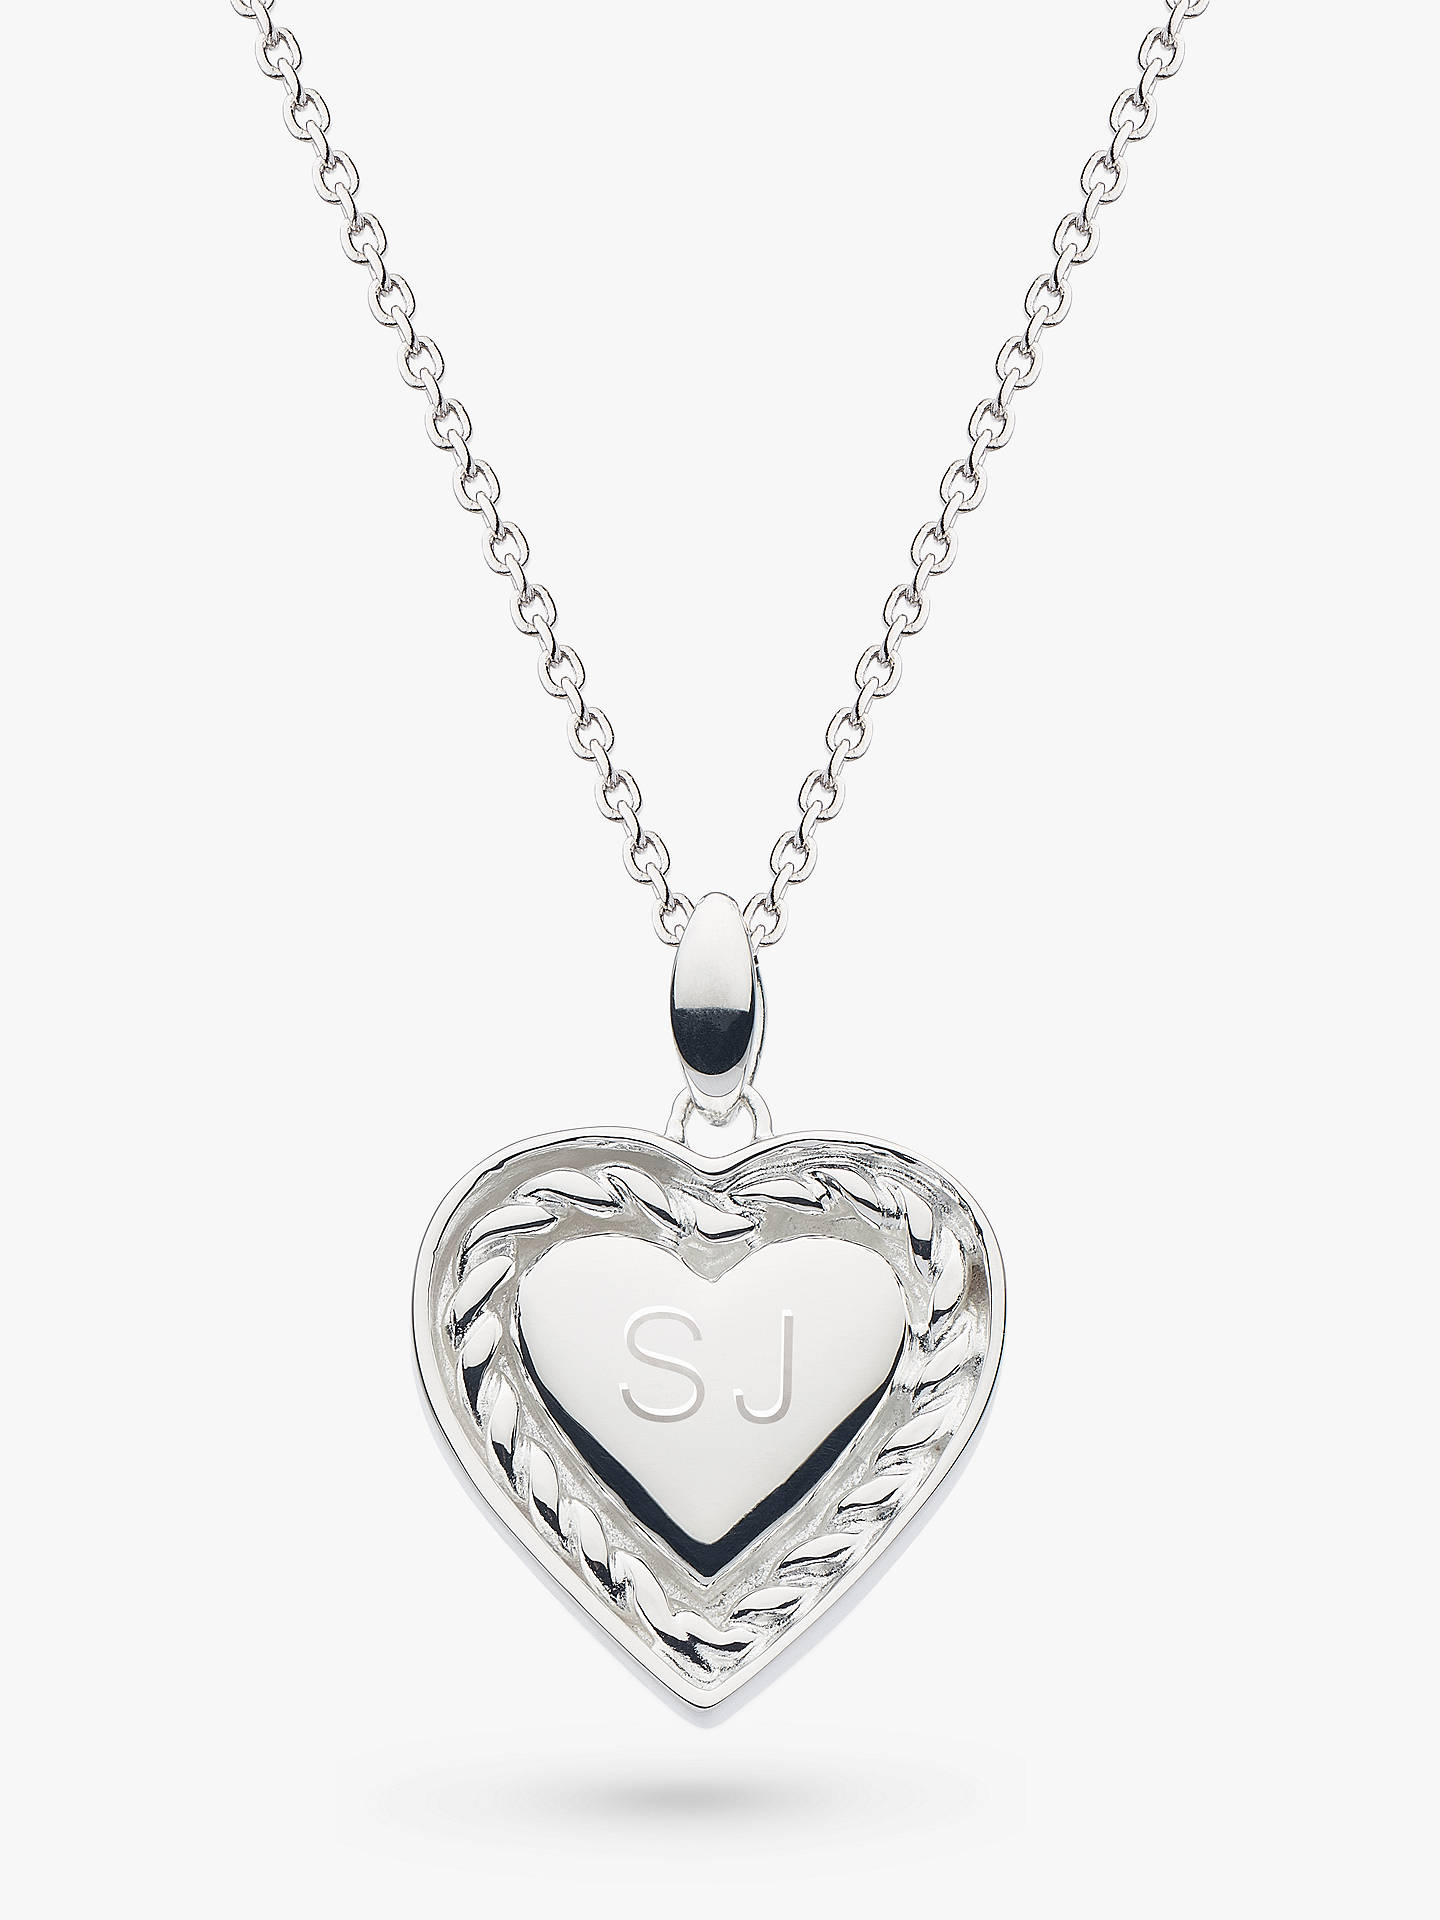 baeadb63f02 Buy Kit Heath Personalised Sterling Silver Twist Heart Pendant Necklace,  Silver Online at johnlewis.